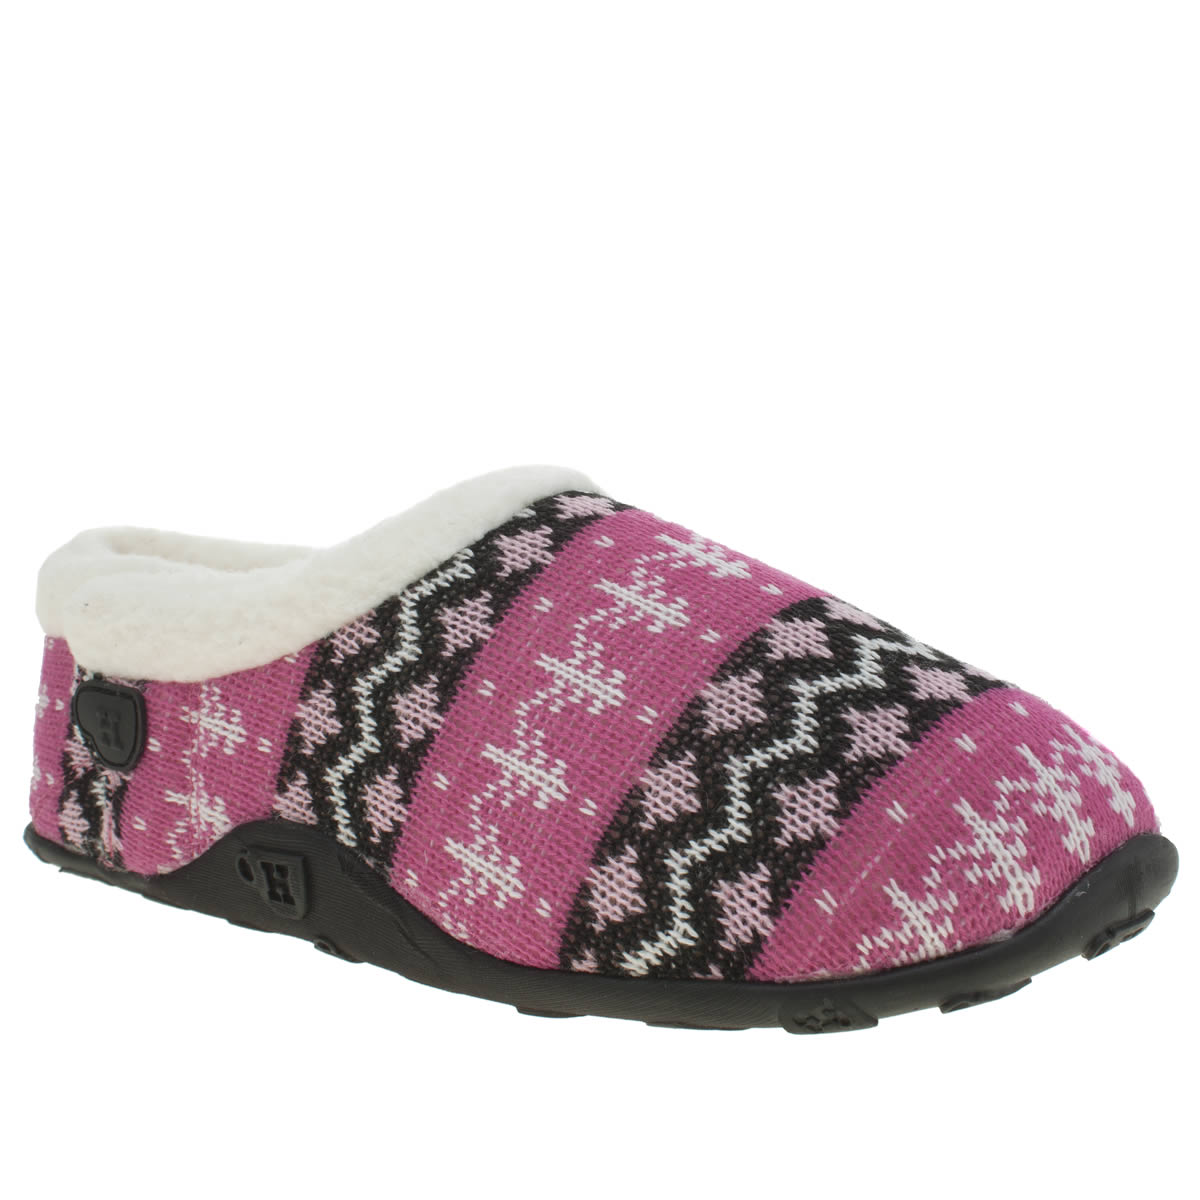 Homeys Homeys Black & Pink Trudie Slippers